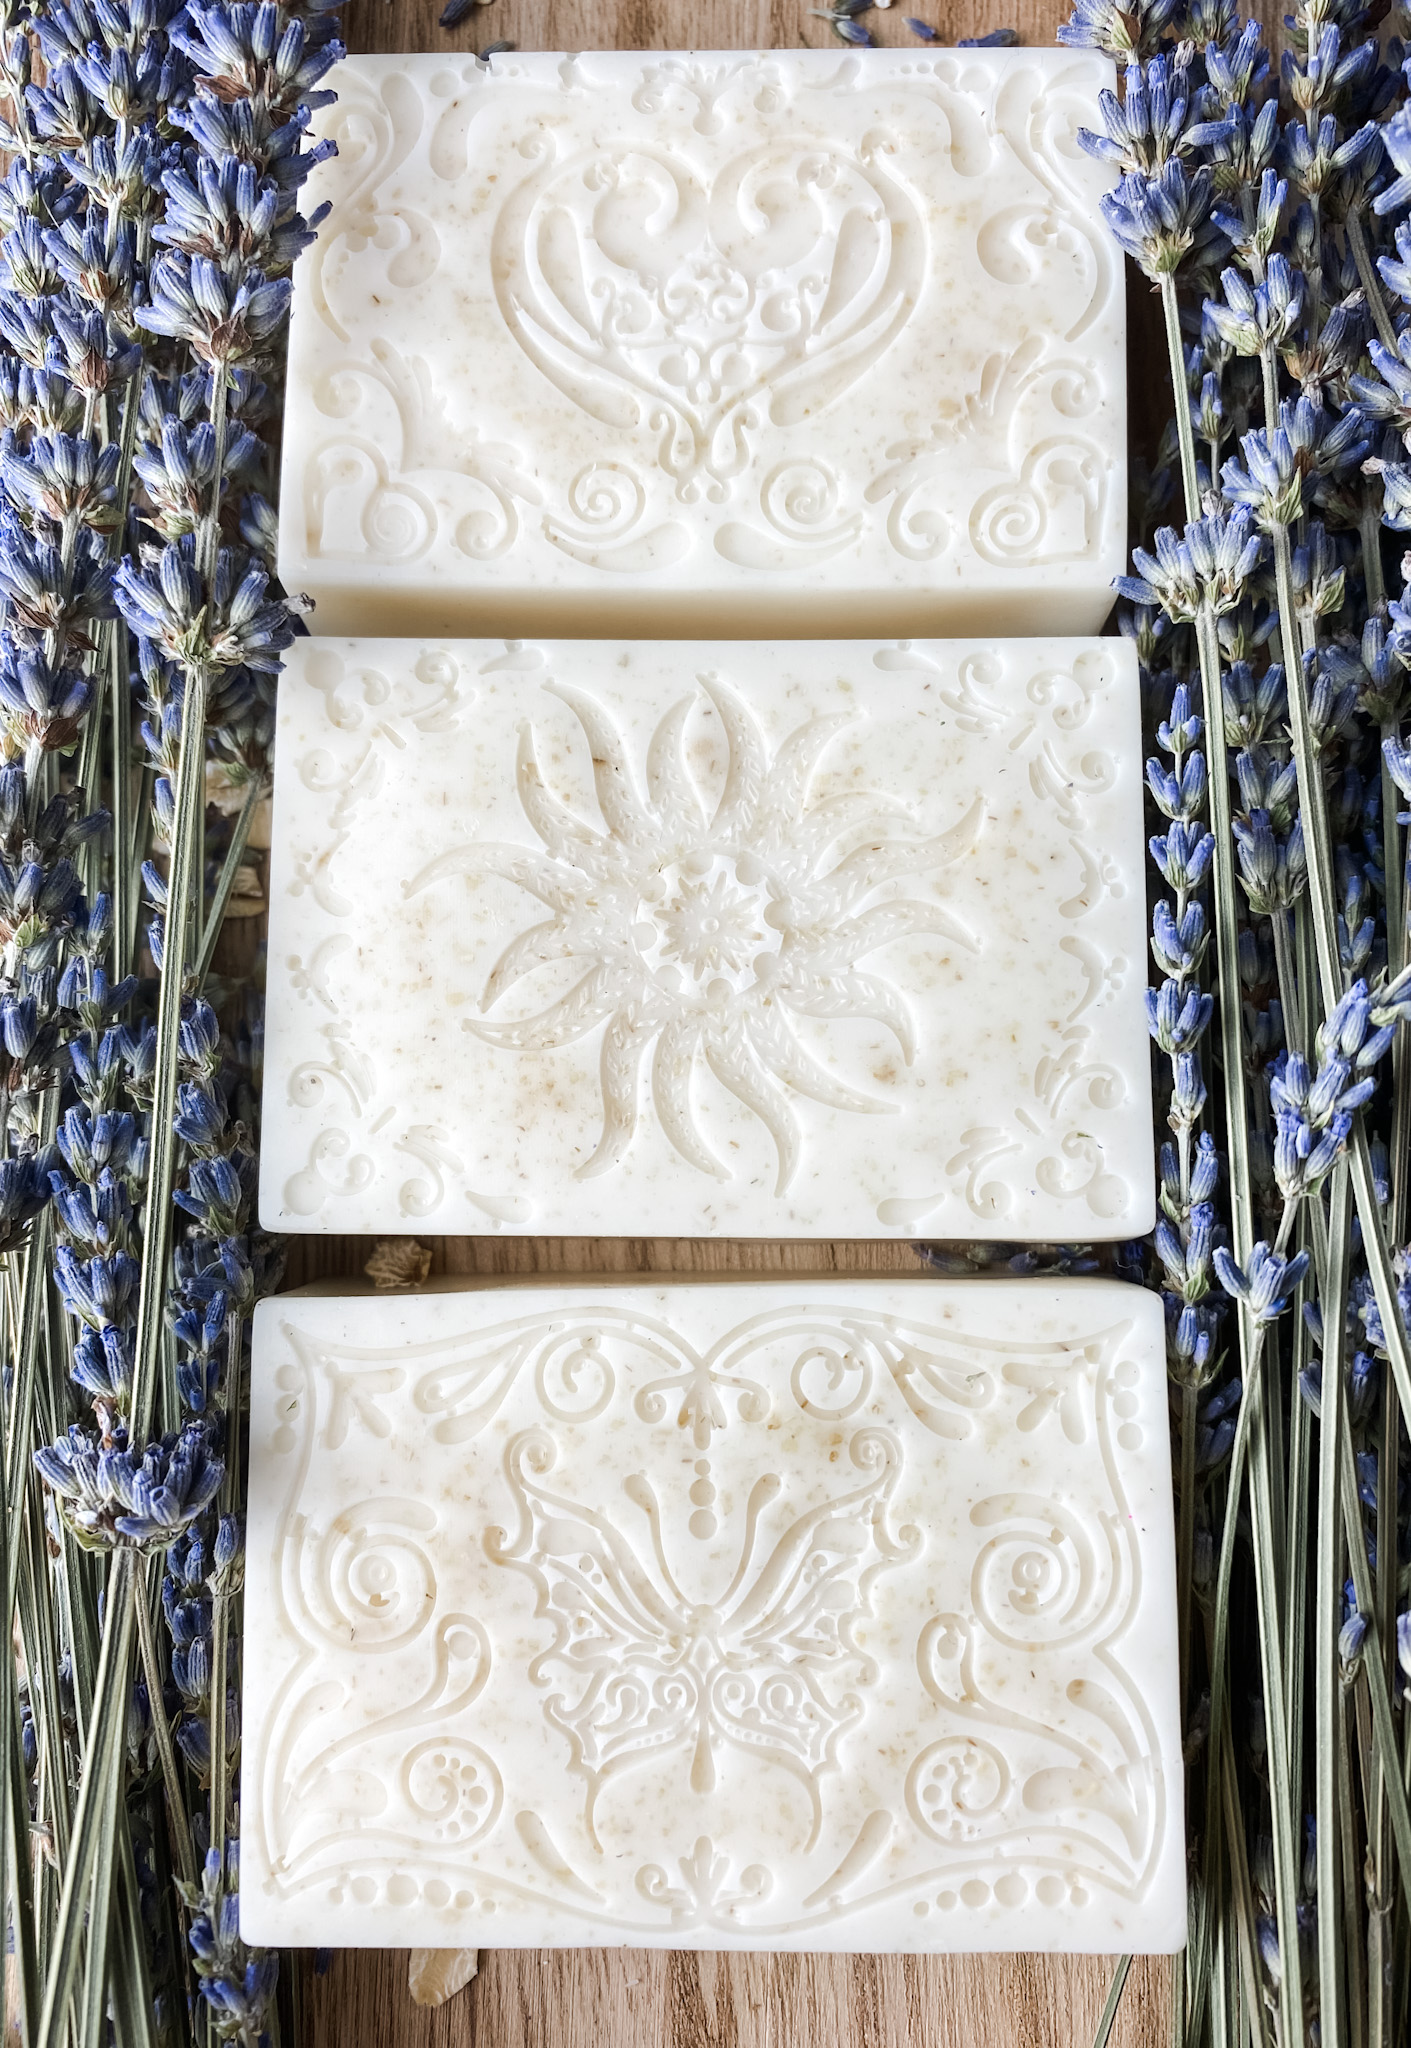 goat milk soaps 3 with motive melt and pour soaps